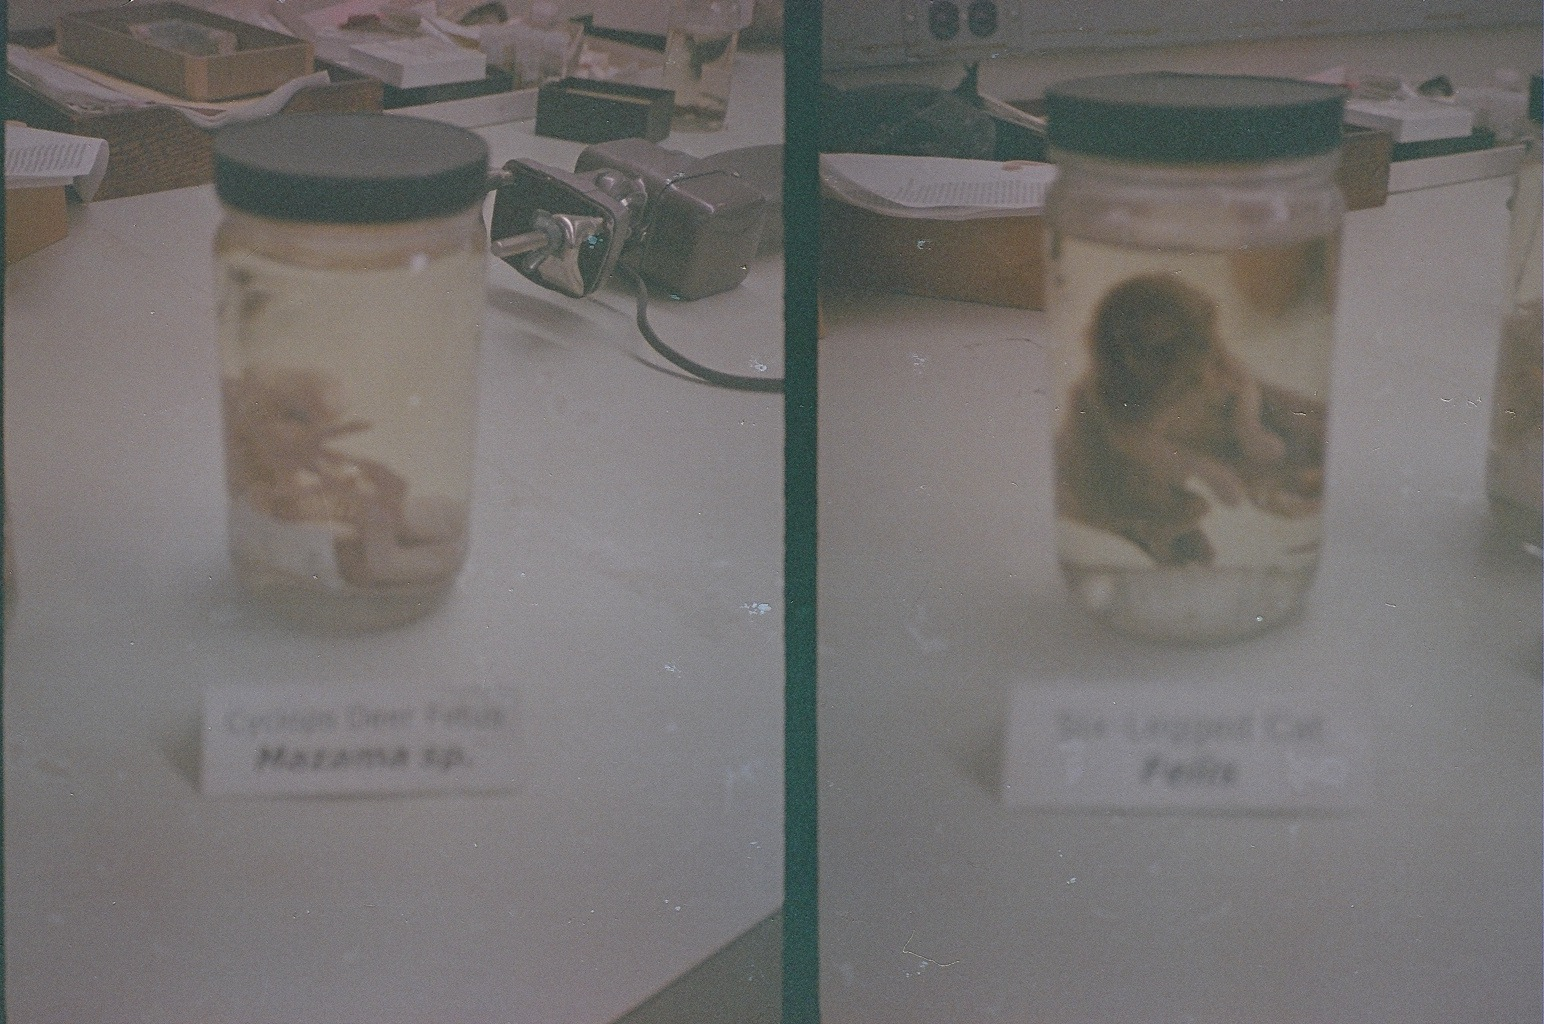 Left: cyclops deer fetus. Right: six-legged kitten.Taken at the Field Museum, October 2013. Canon Demi (half-frame) camera with expired film - excuse the dark exposure.